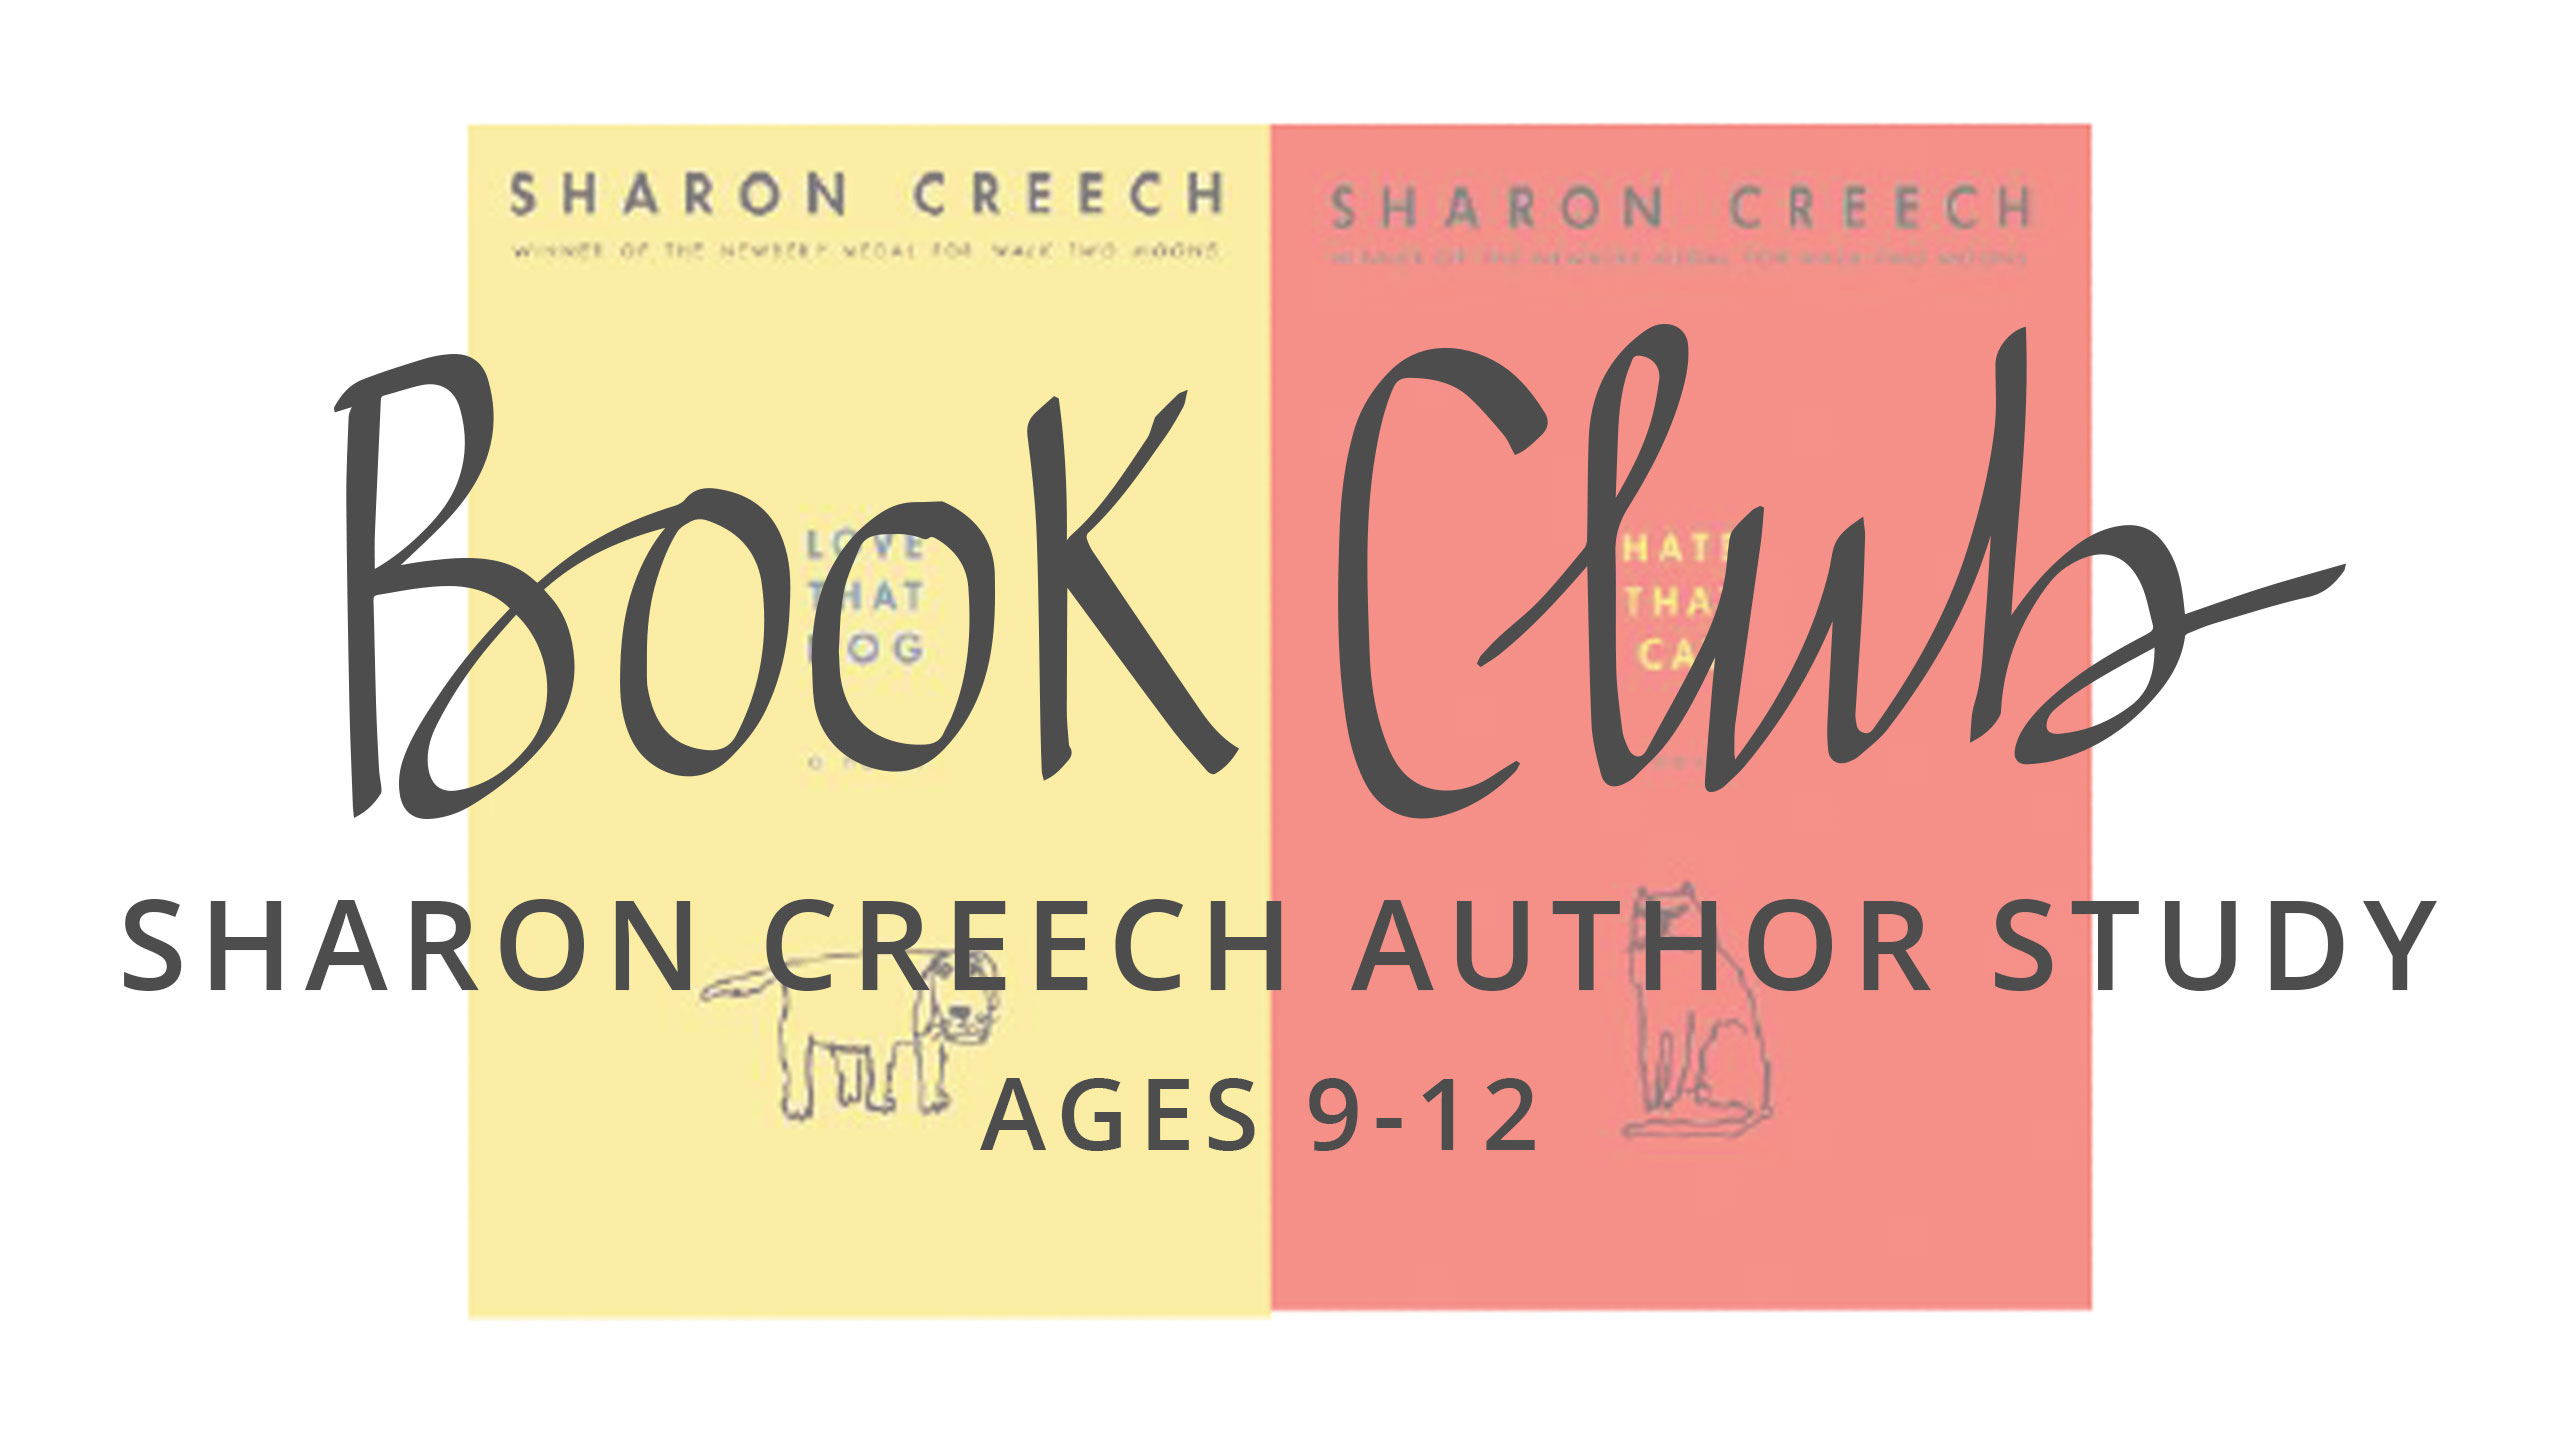 BOOK CLUB: SHARON CREECH AUTHOR STUDY